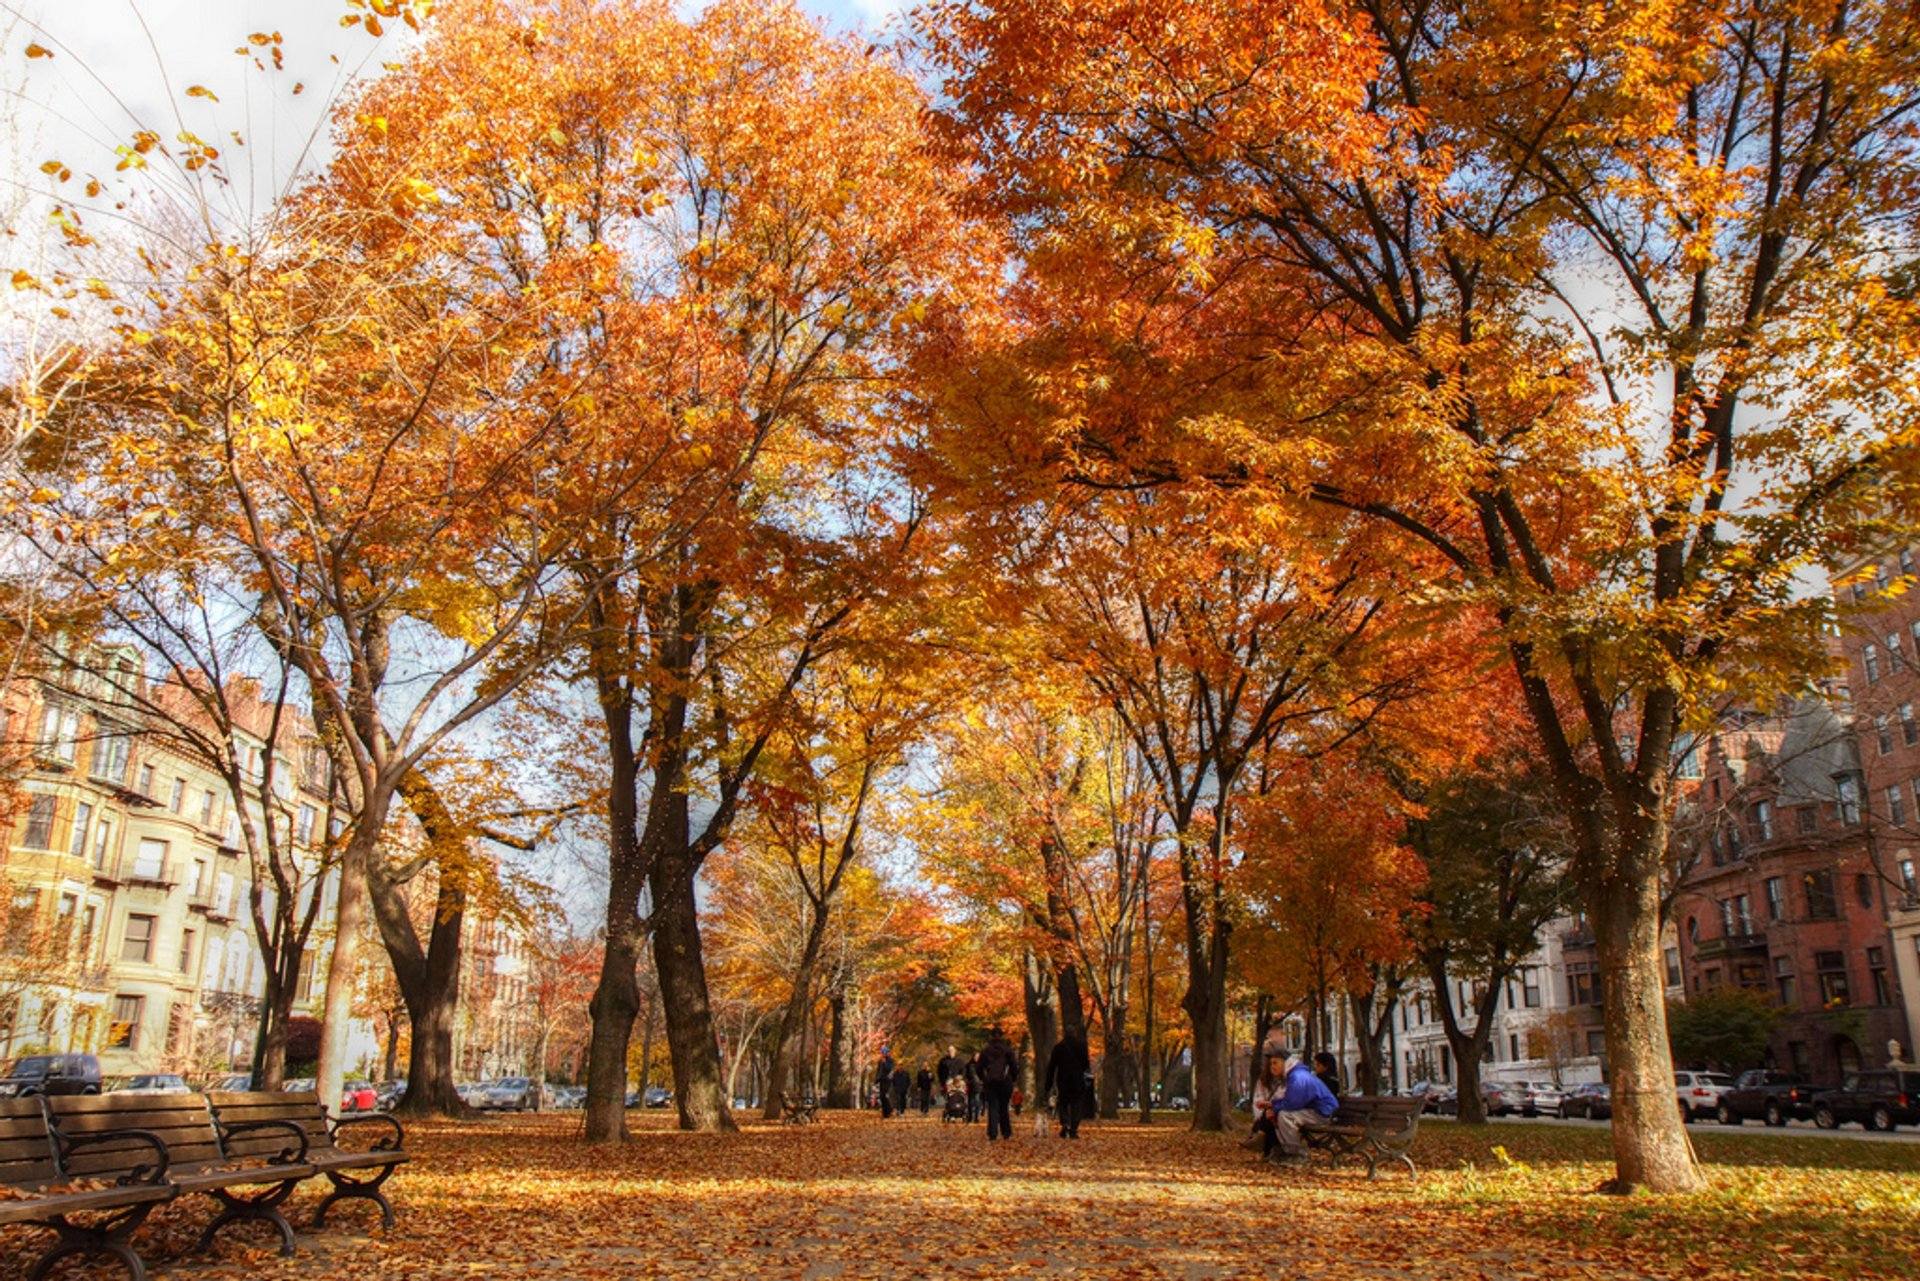 Autumn in Boston 2019 - Best Time